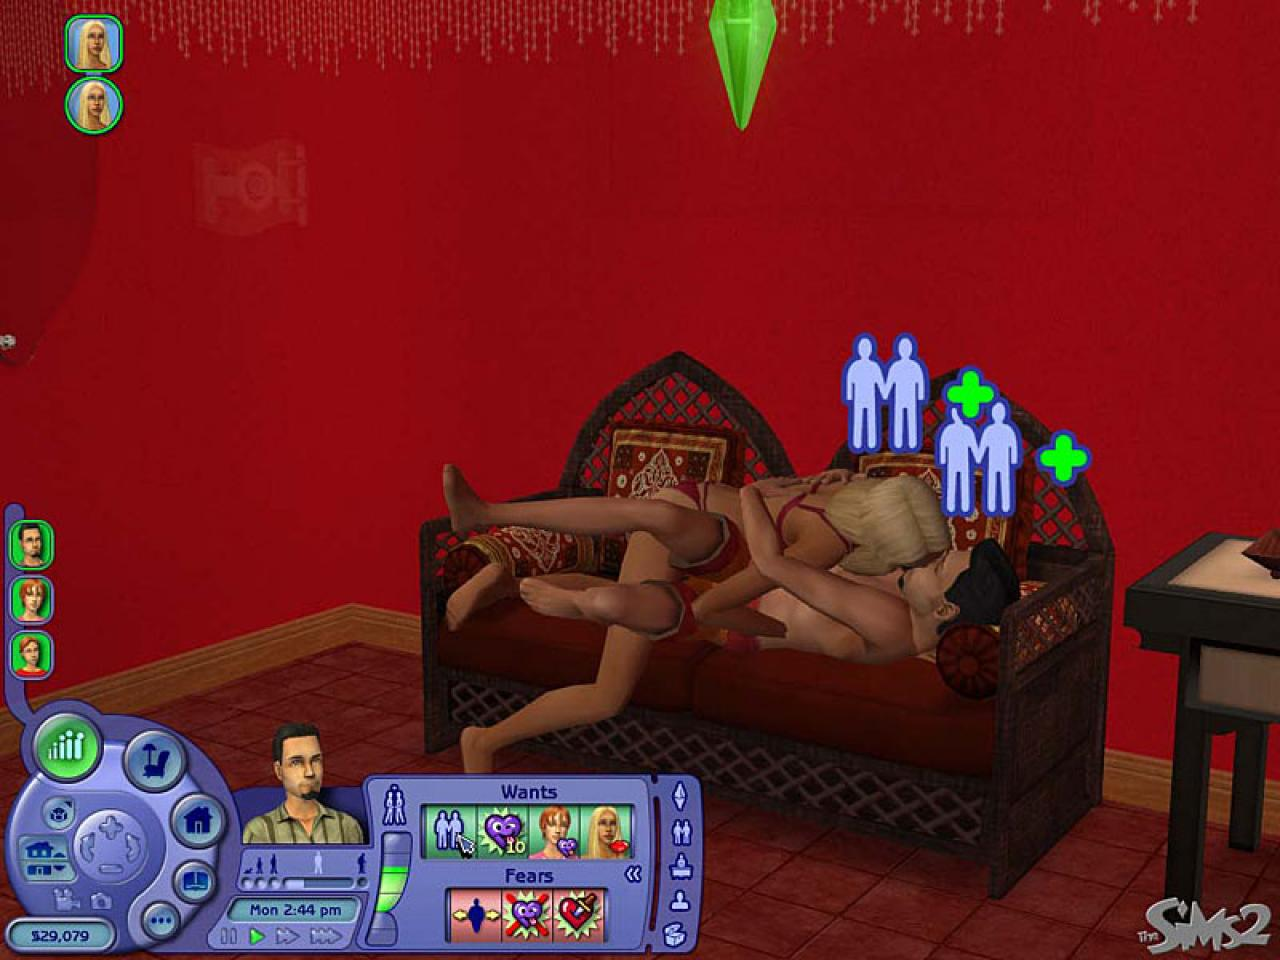 Sims porn game exploited pictures